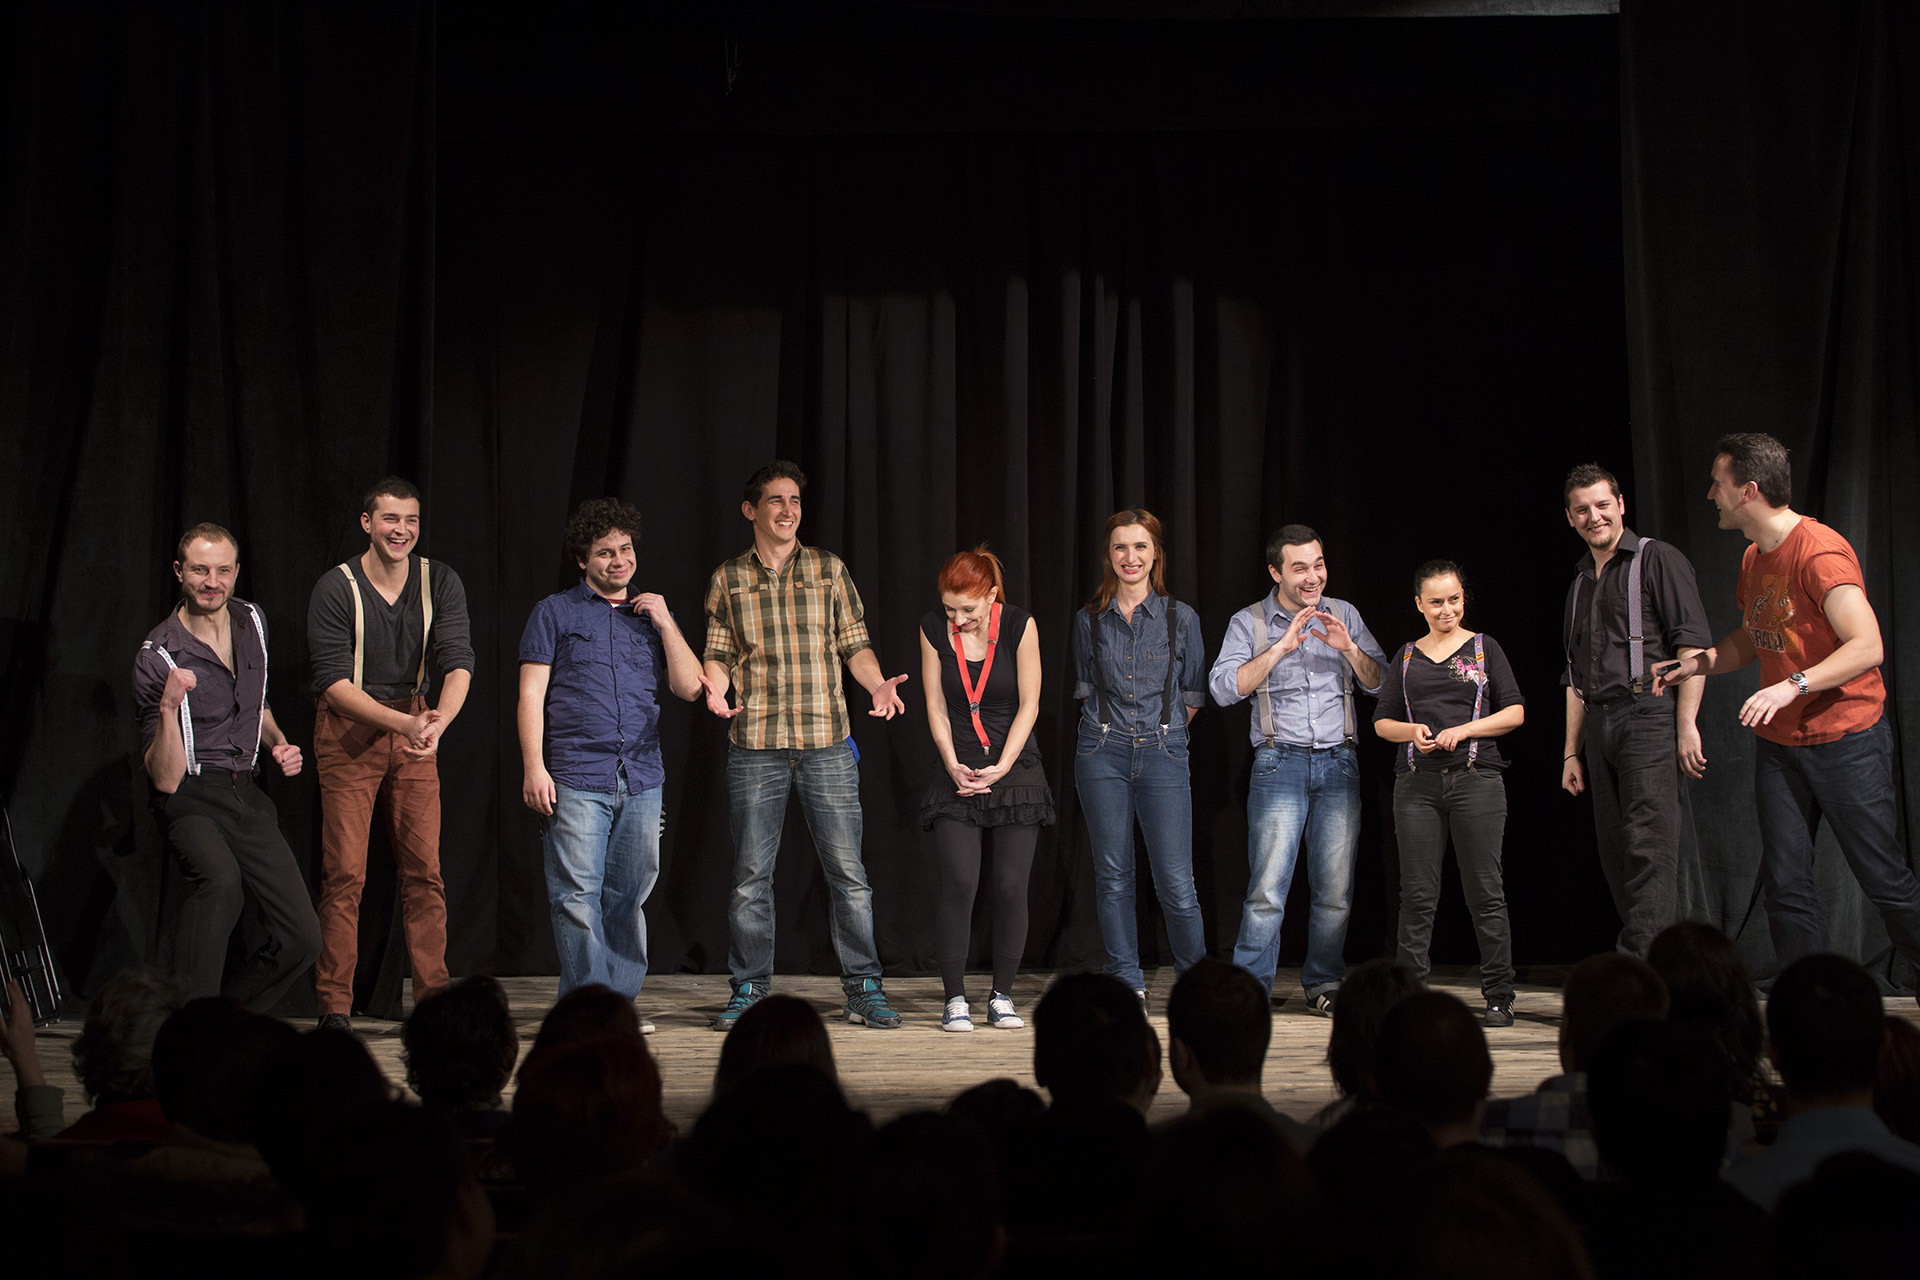 Improv and friendship